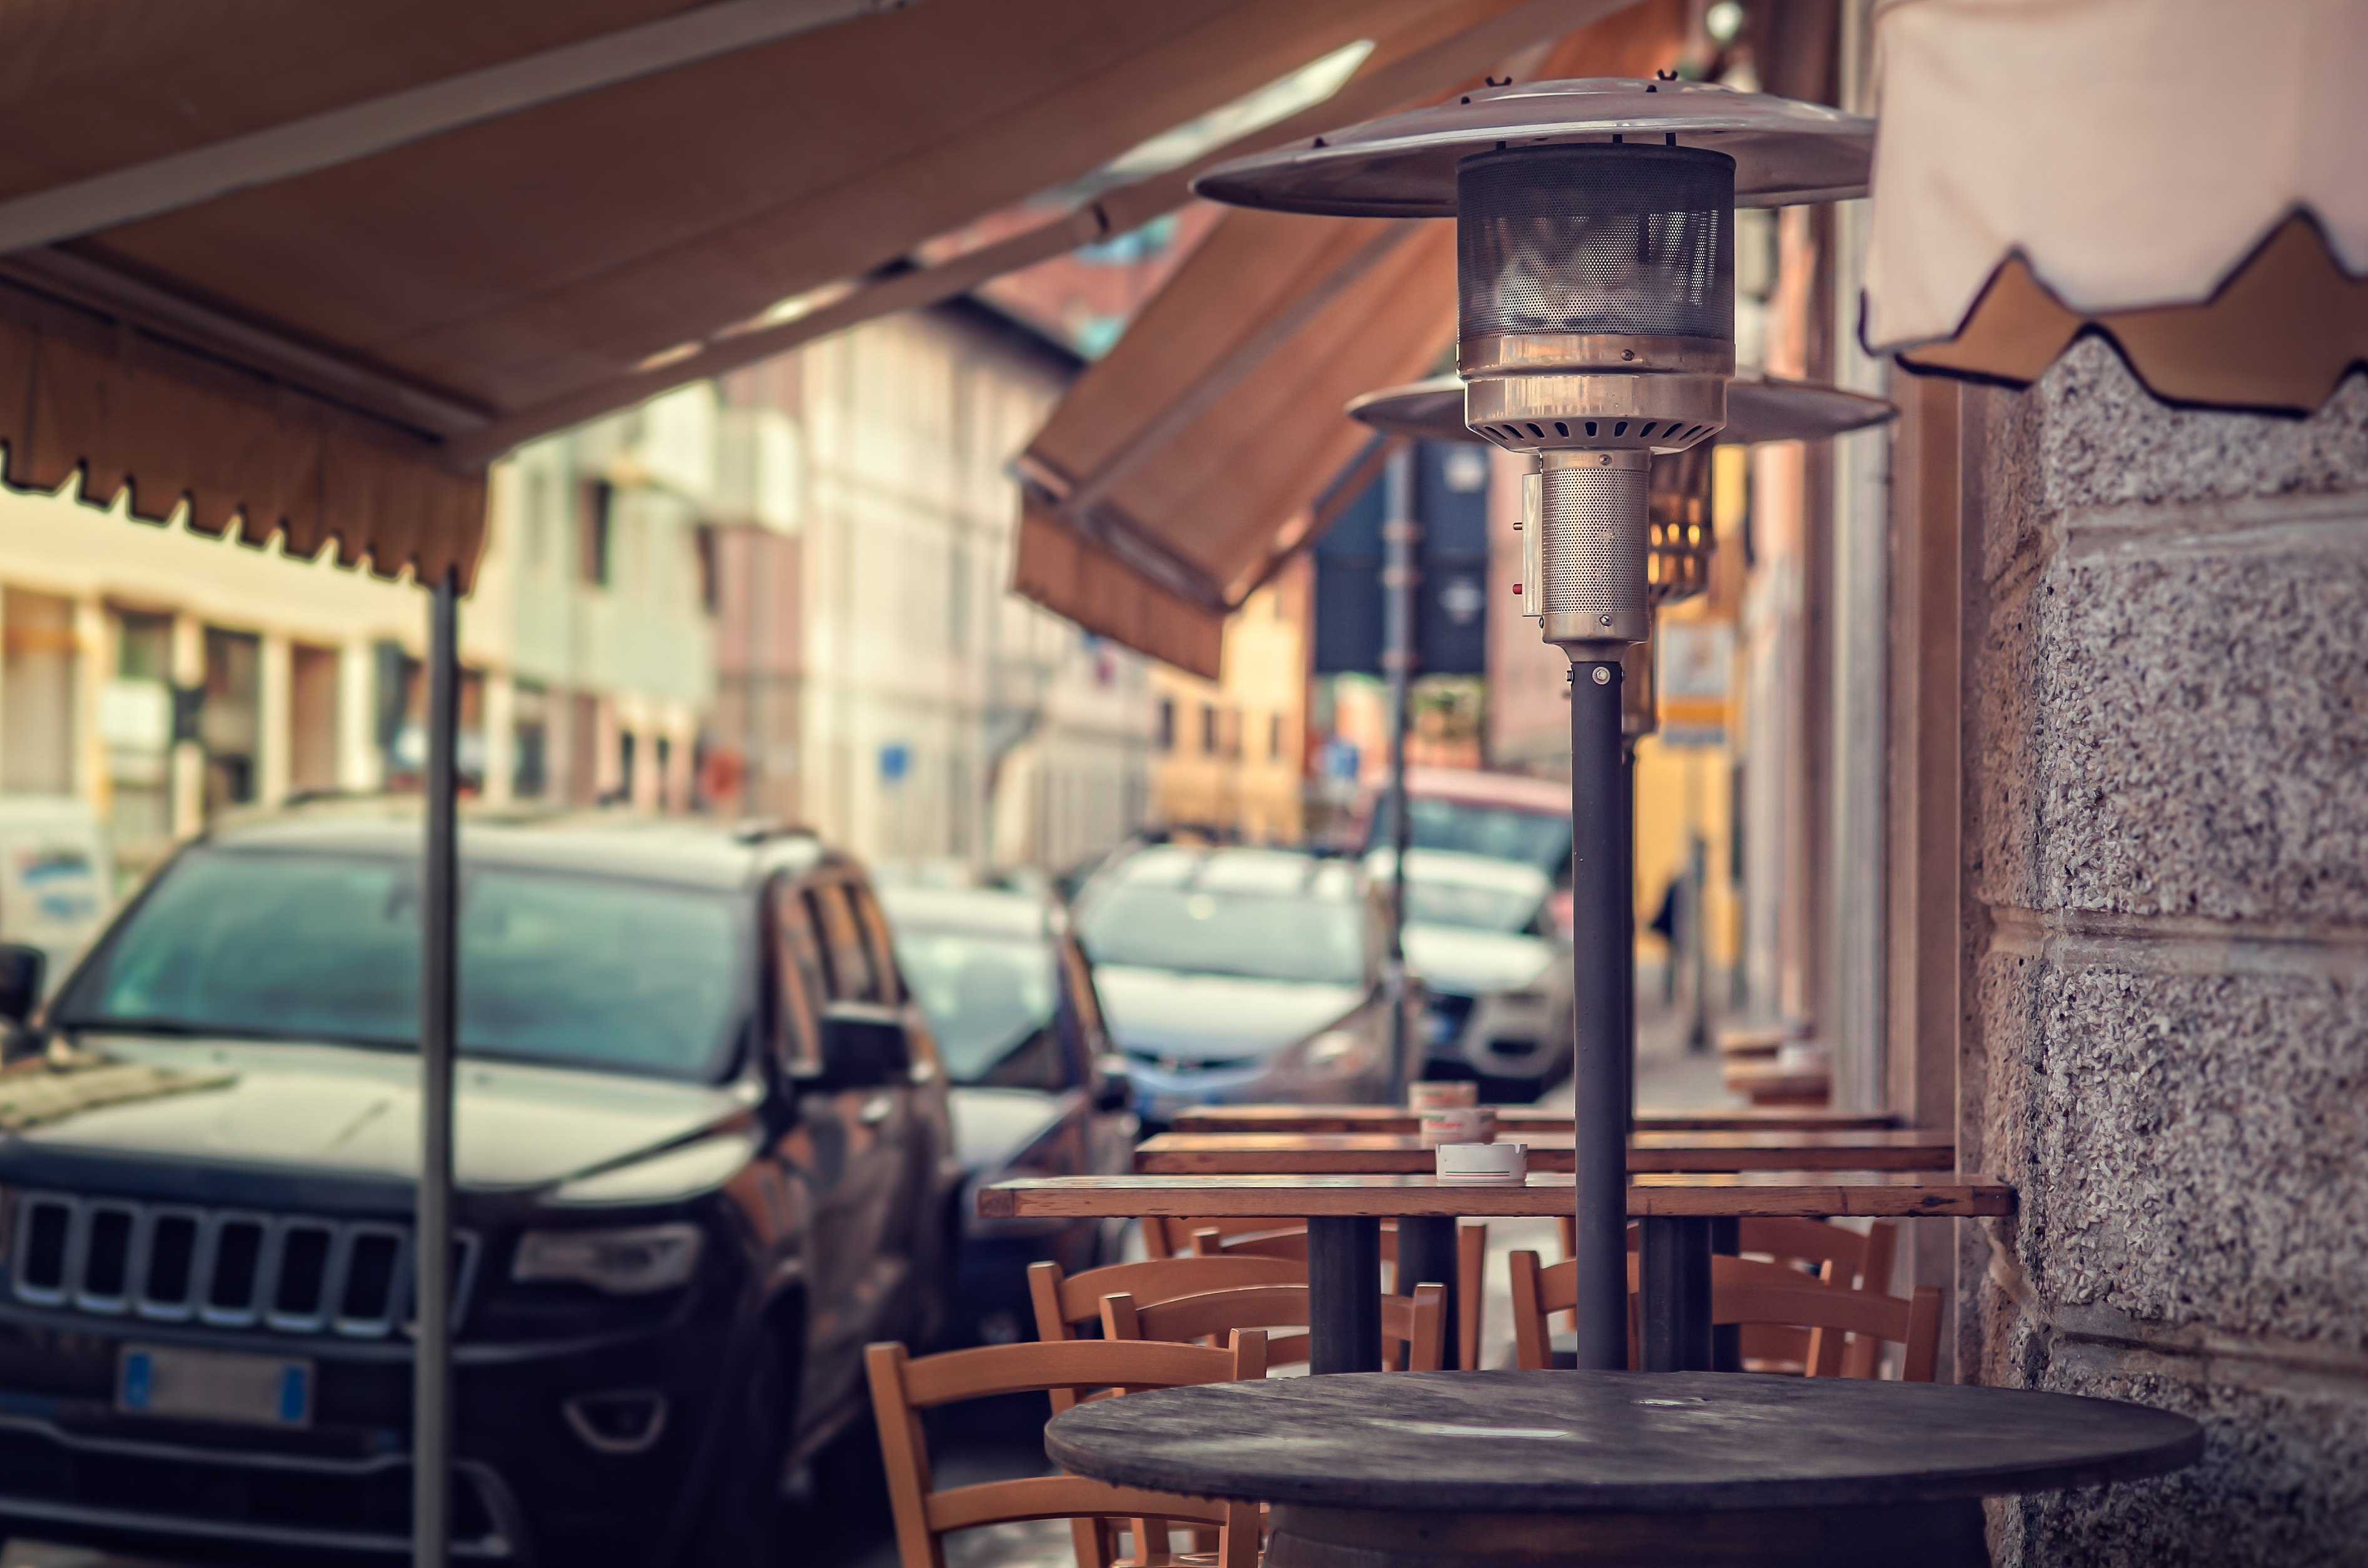 An unlit propane heater standing outside on a street sidewalk with restaurant tables and chairs in the background